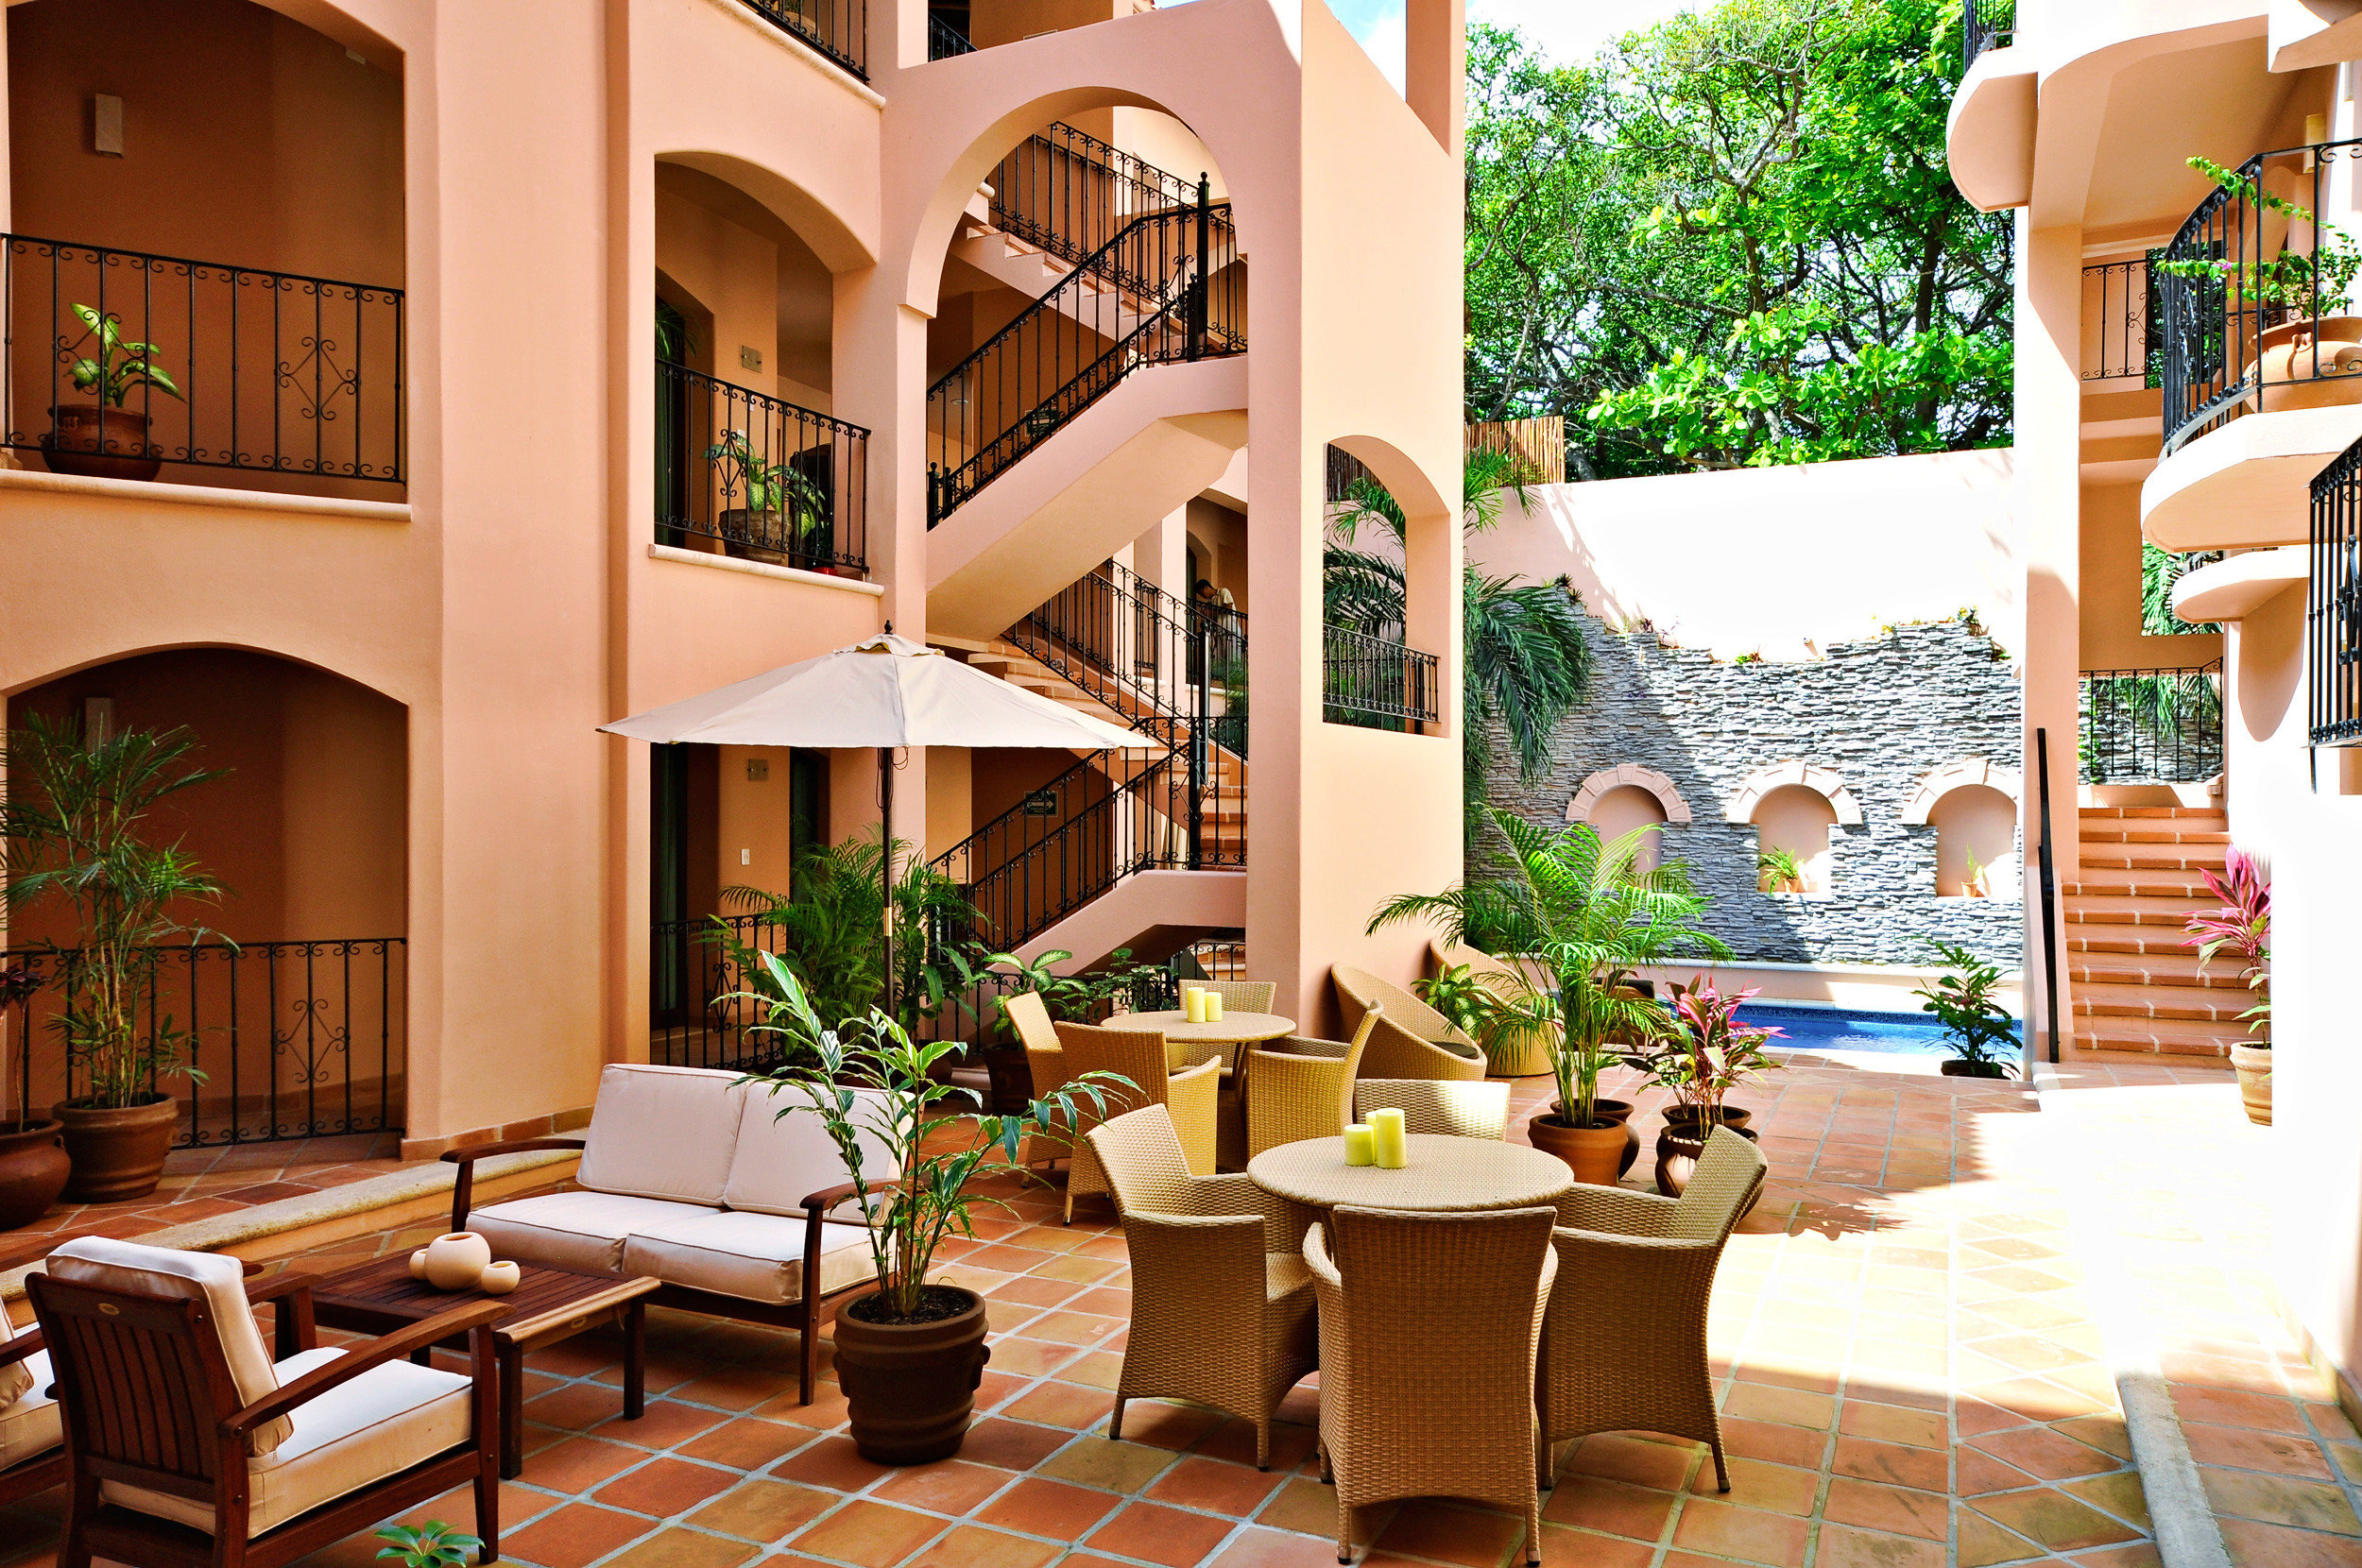 Dining Lounge Patio chair property home Resort condominium Lobby living room Villa Courtyard